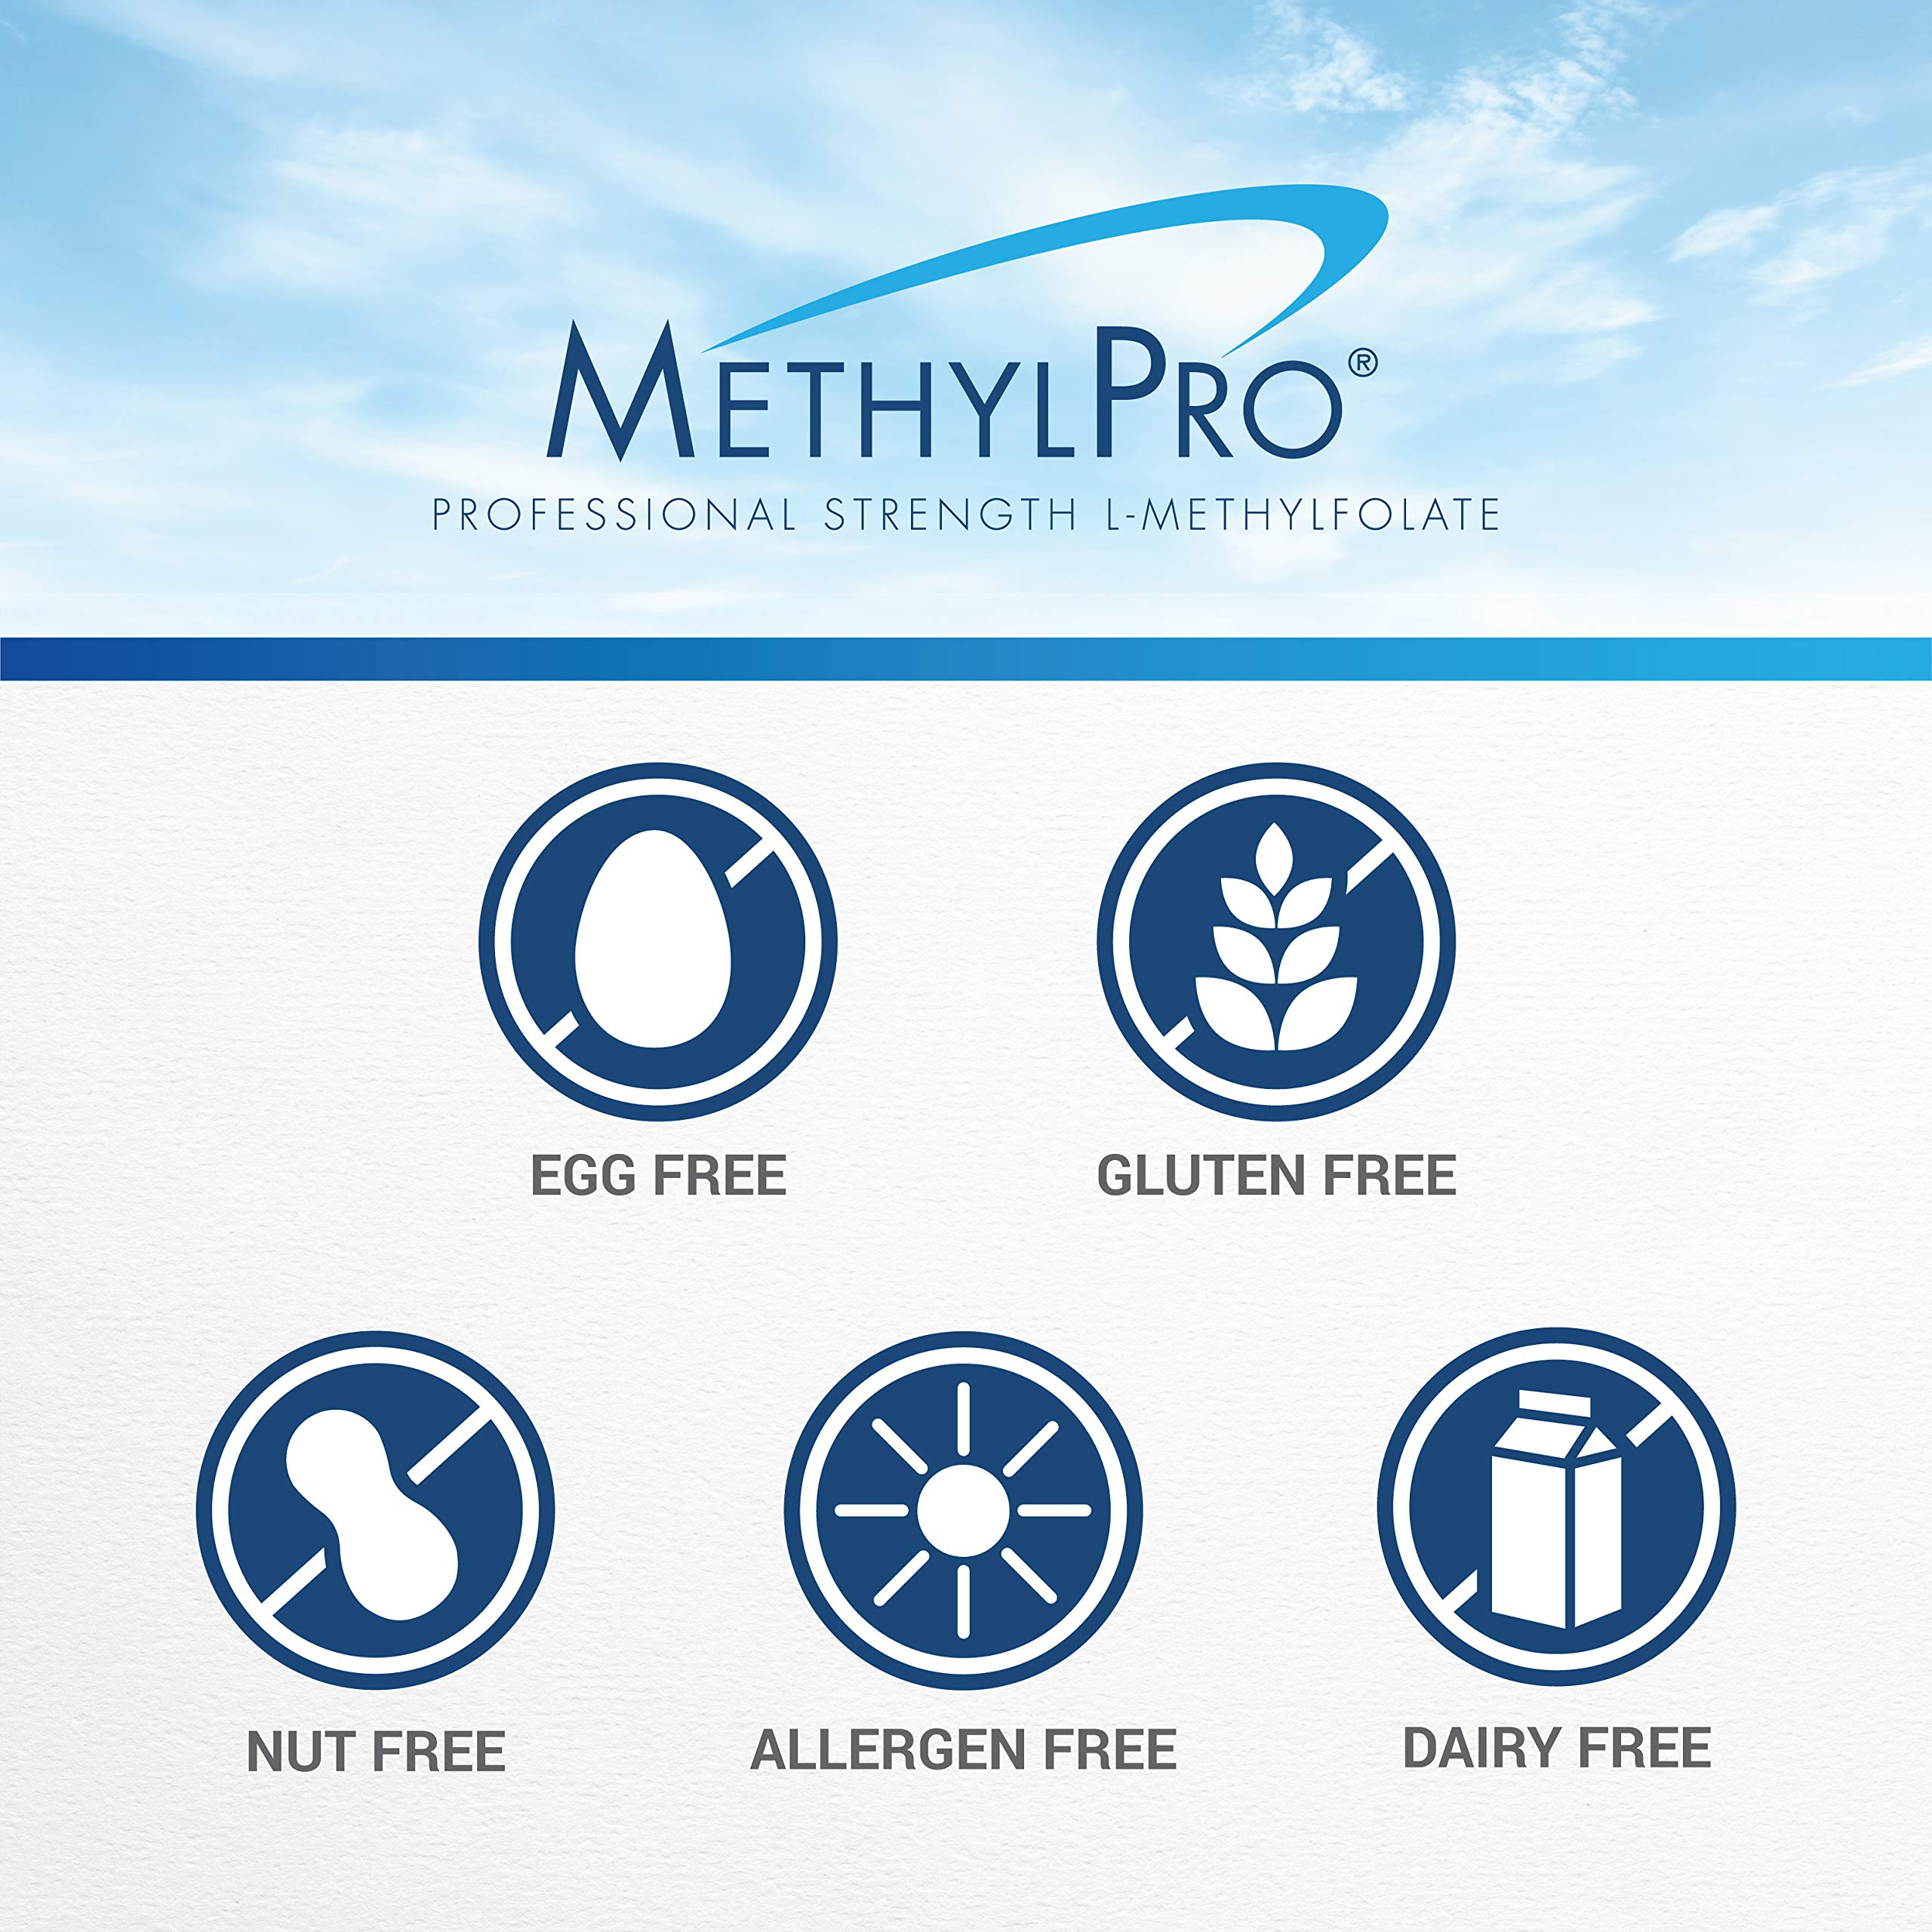 MethylPro - L-Methylfolate 15 mg - 60 Capsules, 15000 mcg Professional Strength Active Folate by Methylpro (Image #7)